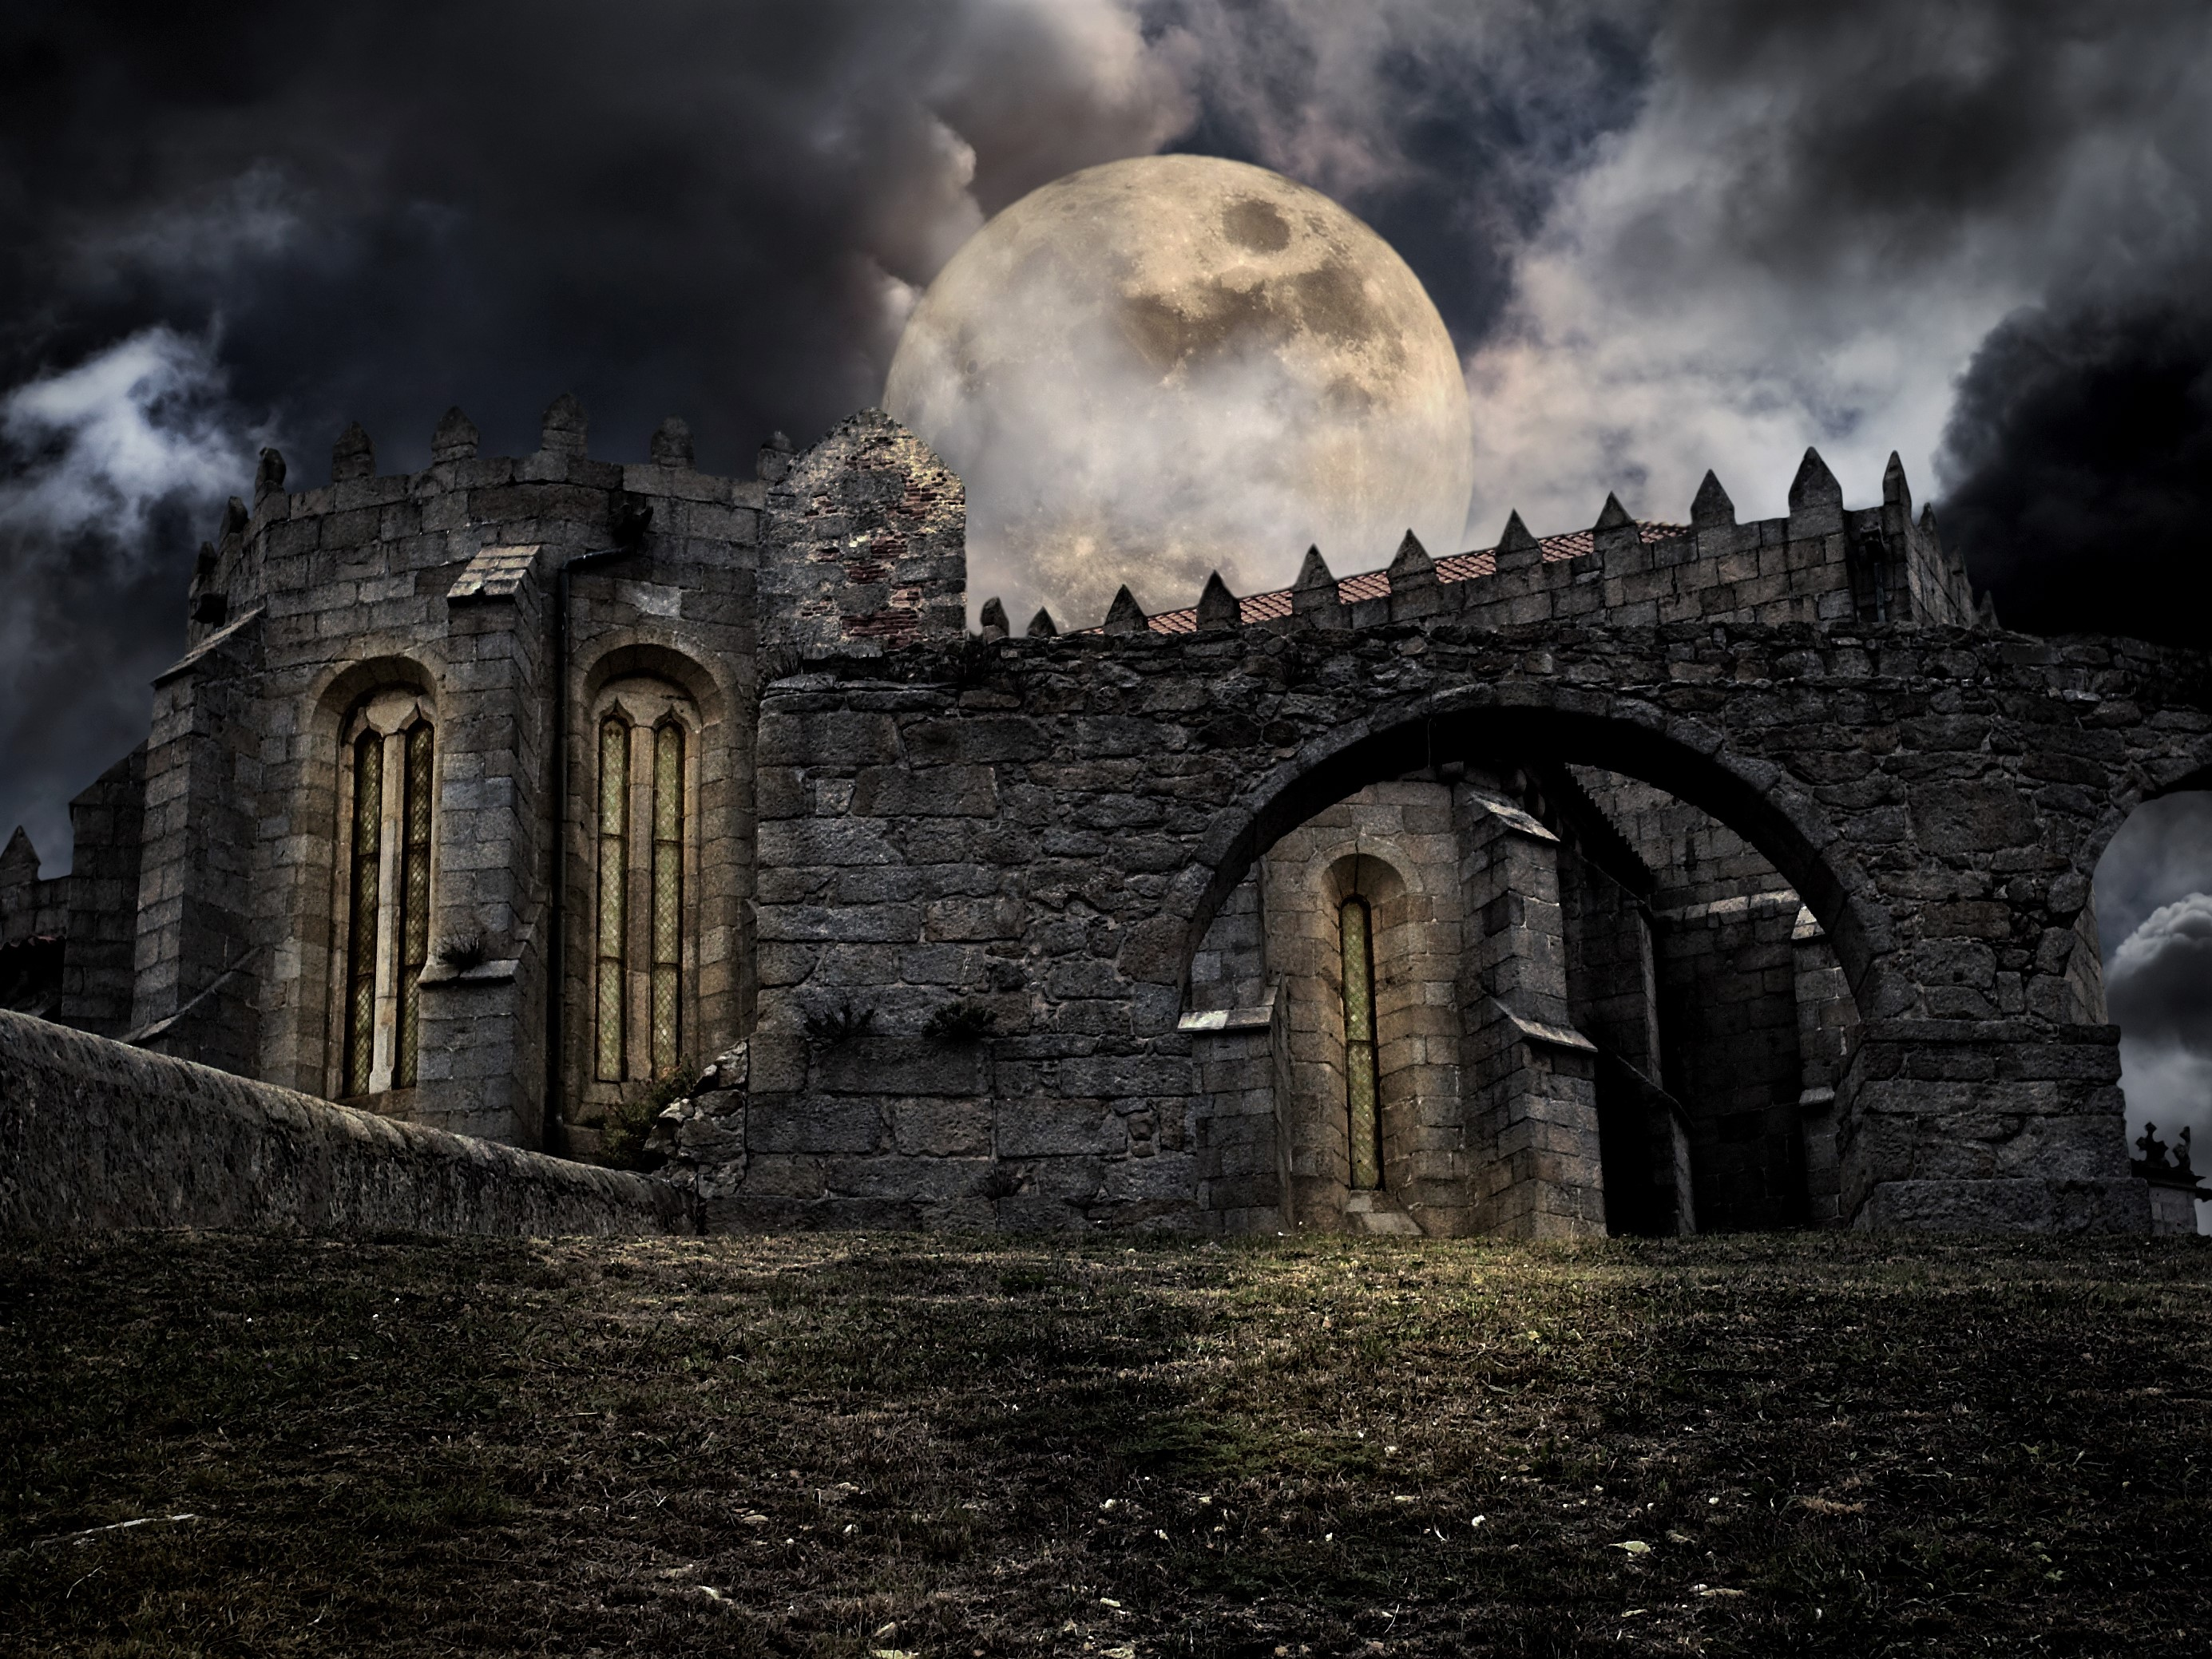 Lowrider Wallpaper Iphone Full Moon Over Old Castle Hd Wallpaper Background Image